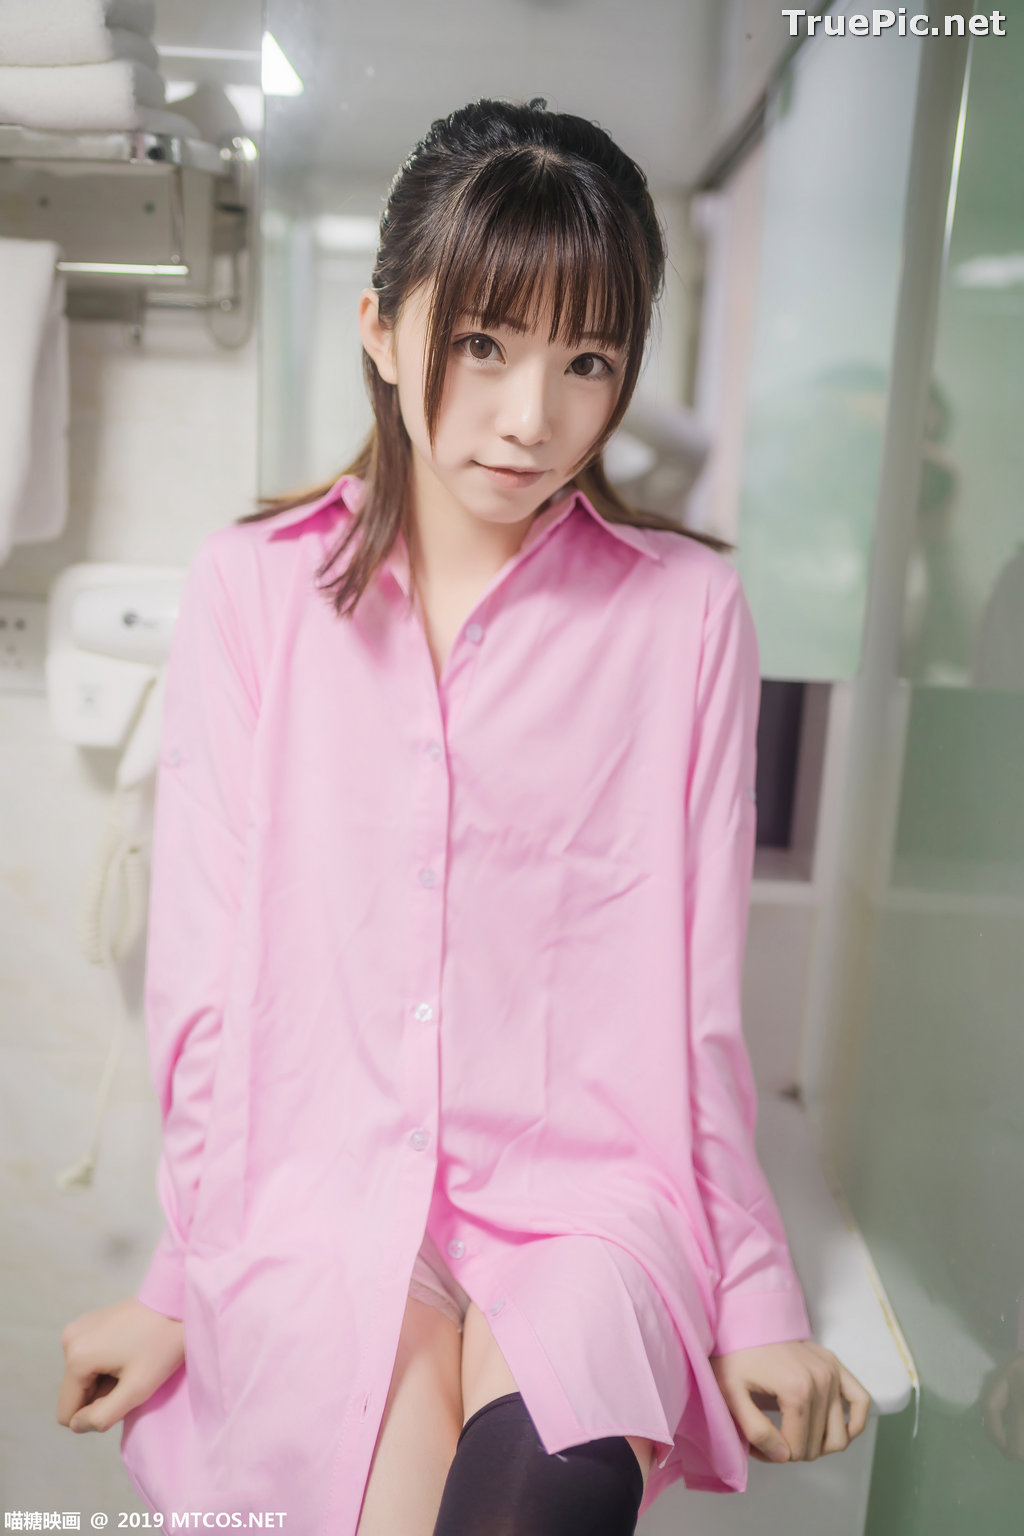 Image [MTCos] 喵糖映画 Vol.022 – Chinese Model – Pink Shirt and Black Stockings - TruePic.net - Picture-7